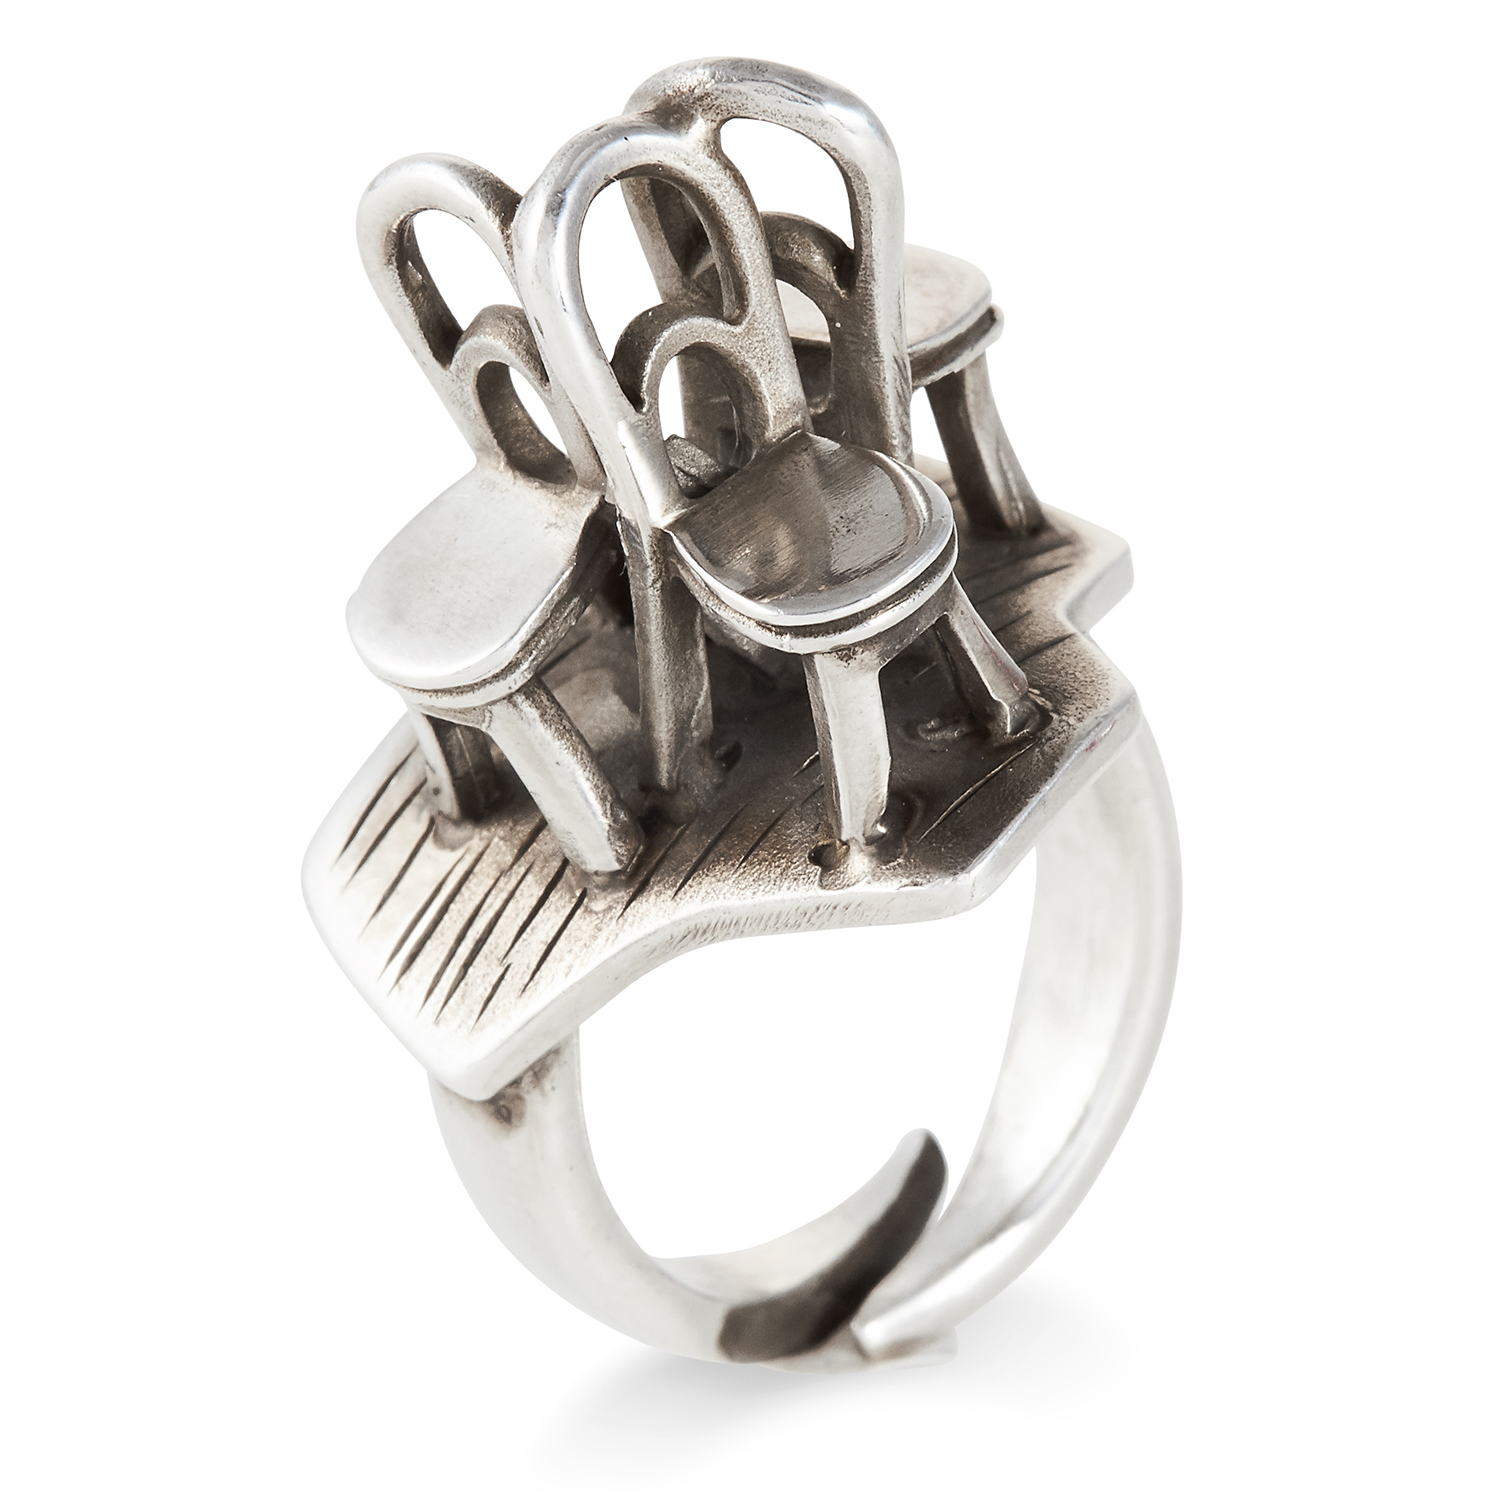 Los 77 - A SILVER RING, GEORG JENSEN in sterling silver, depicting three chairs, stamped 925, size M / 6,